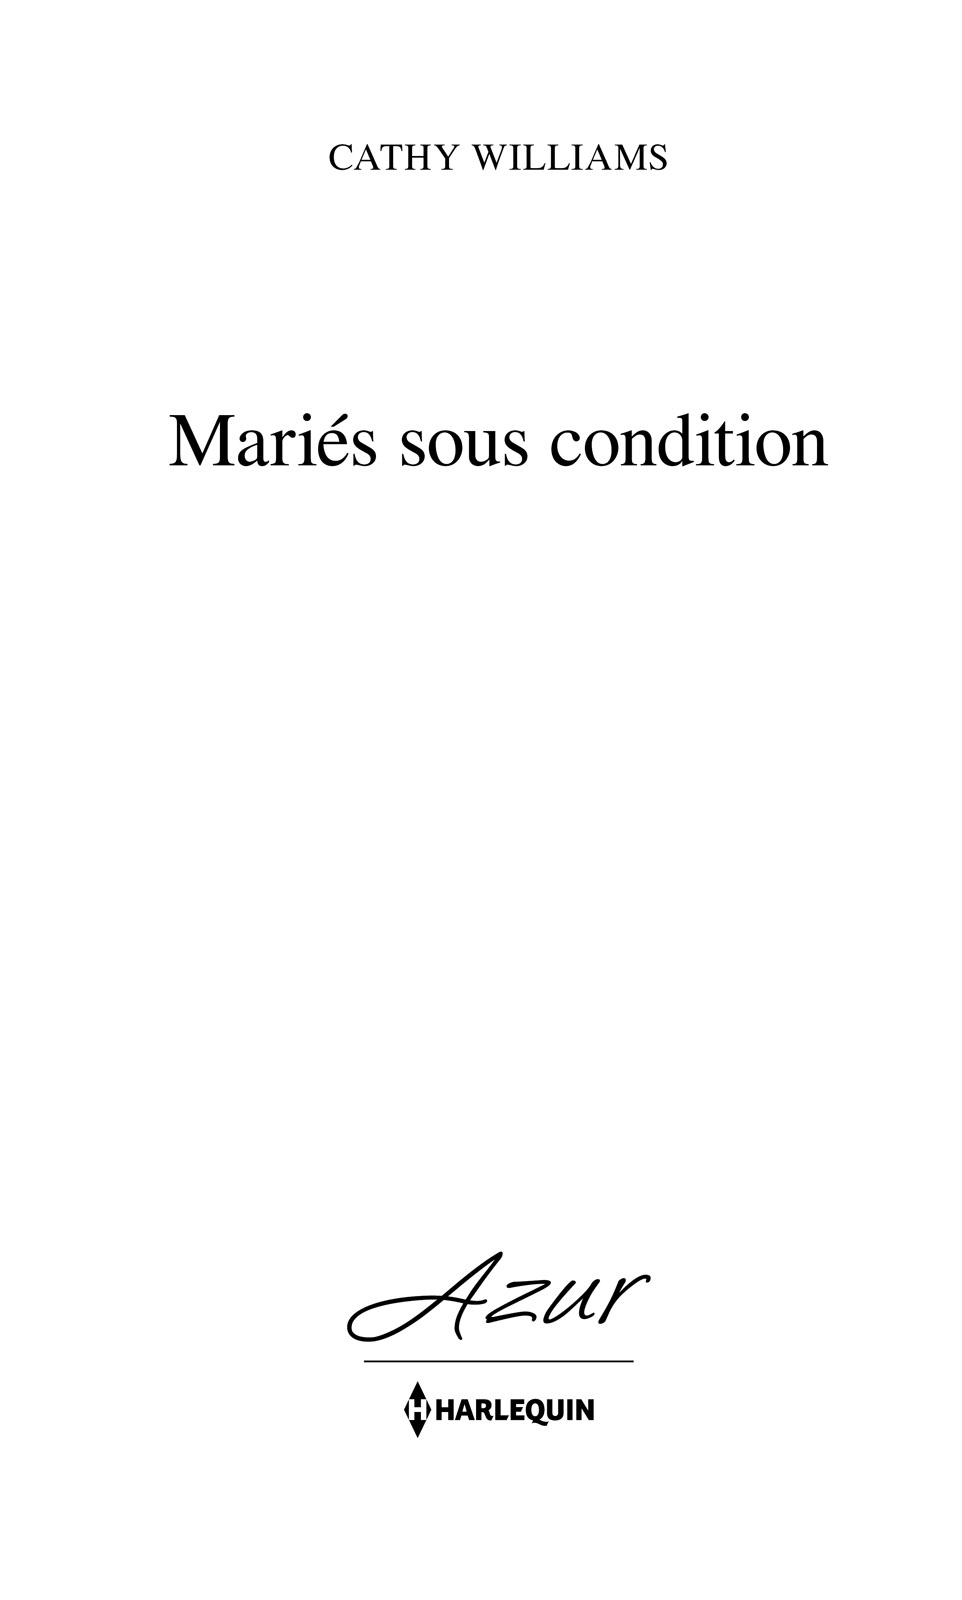 Page de titre : Cathy Williams, Mariés sous condition, Harlequin